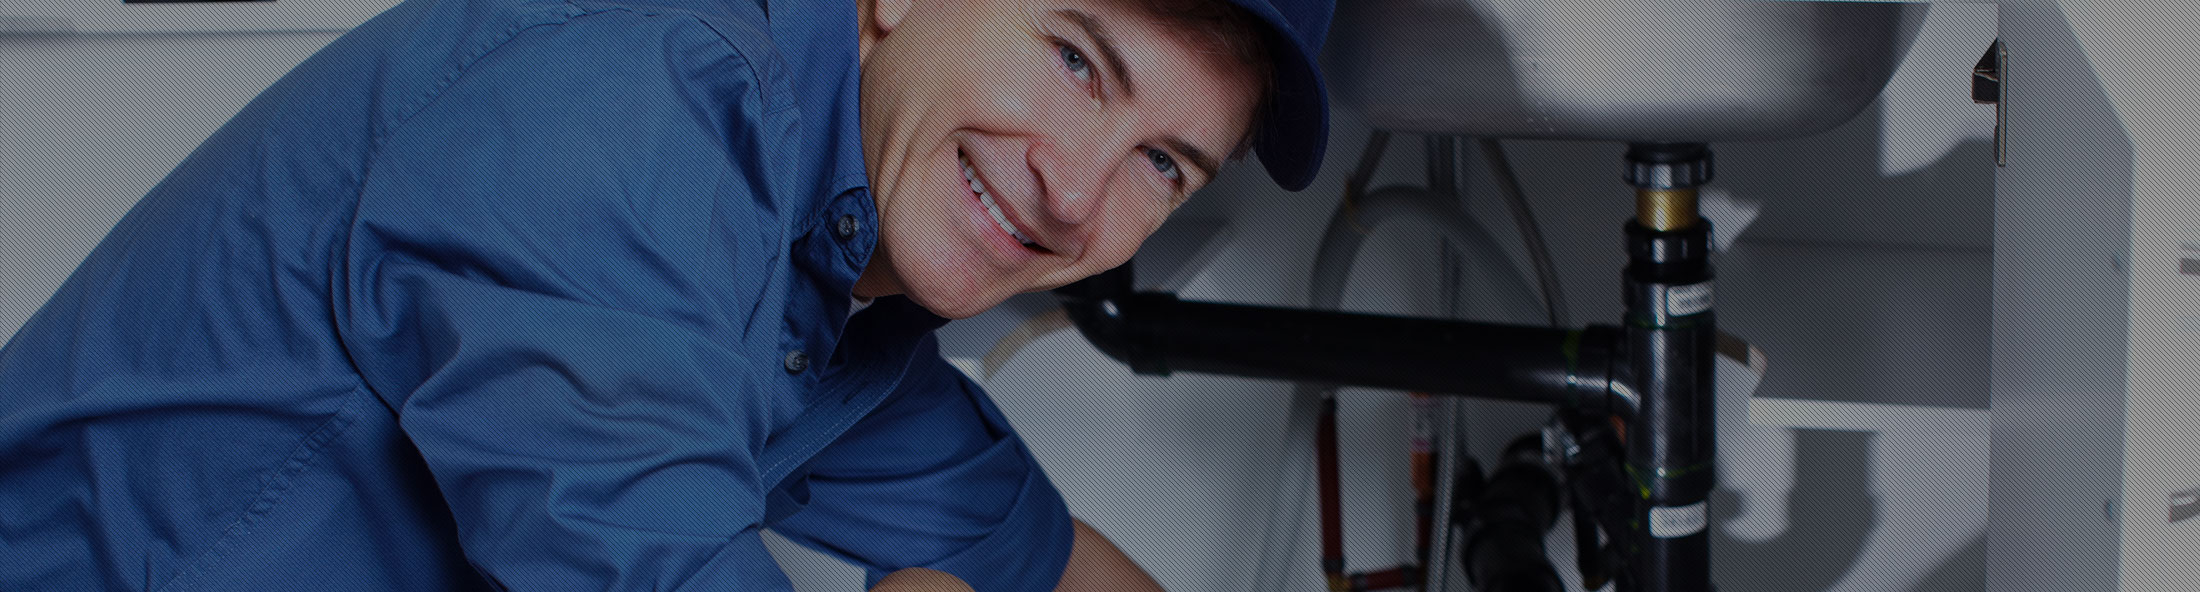 Plumbing Specialists in Sunset Hills, CA